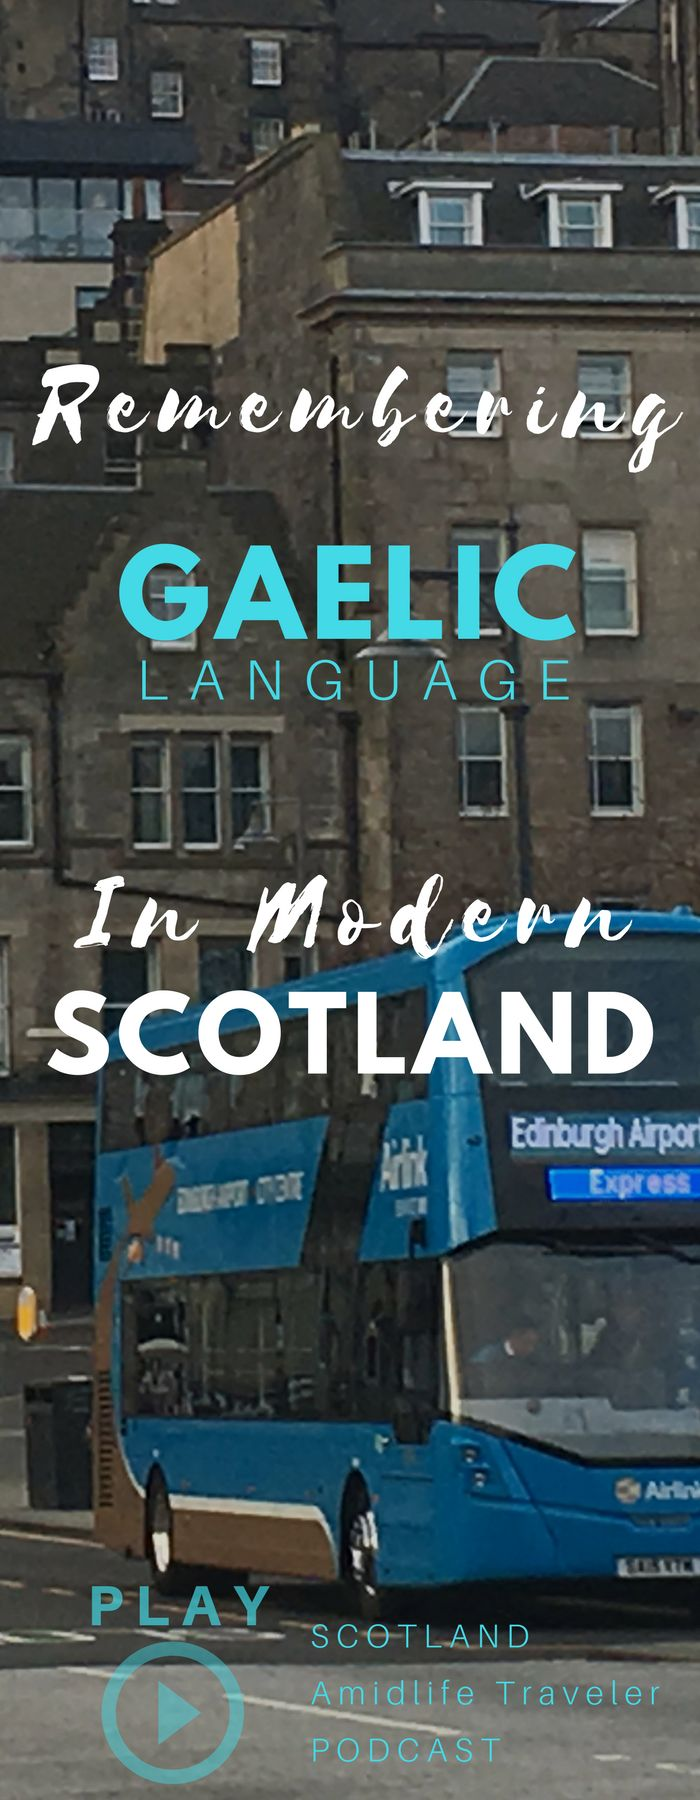 A quick lesson on Scotland's culture and Scottish Gaelic translation. More specifically, about the historic divide and differences between mainland Scotland culture and history knowledge and the more remote Scottish Highland and Hebrides Islands where things like Scottish Gaelic language has remained woven into daily life and regional culture. This travel podcast episode is a is a rare treat that combines a personal story and also a brief audio lesson in Scottish Gaelic translation